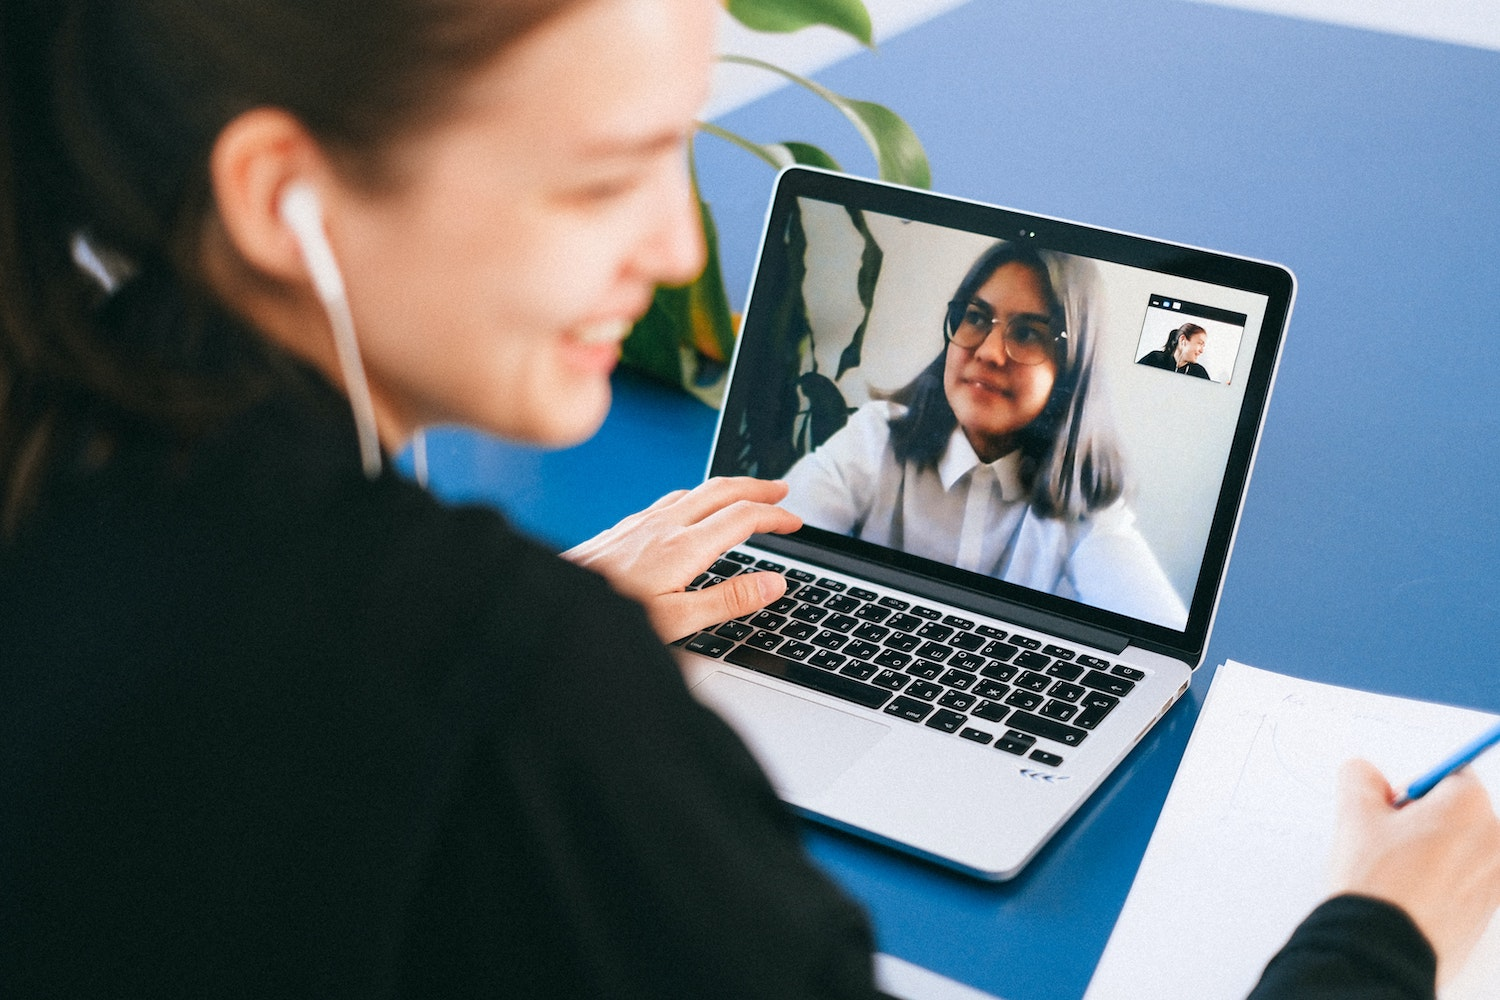 How to onboard candidates remotely